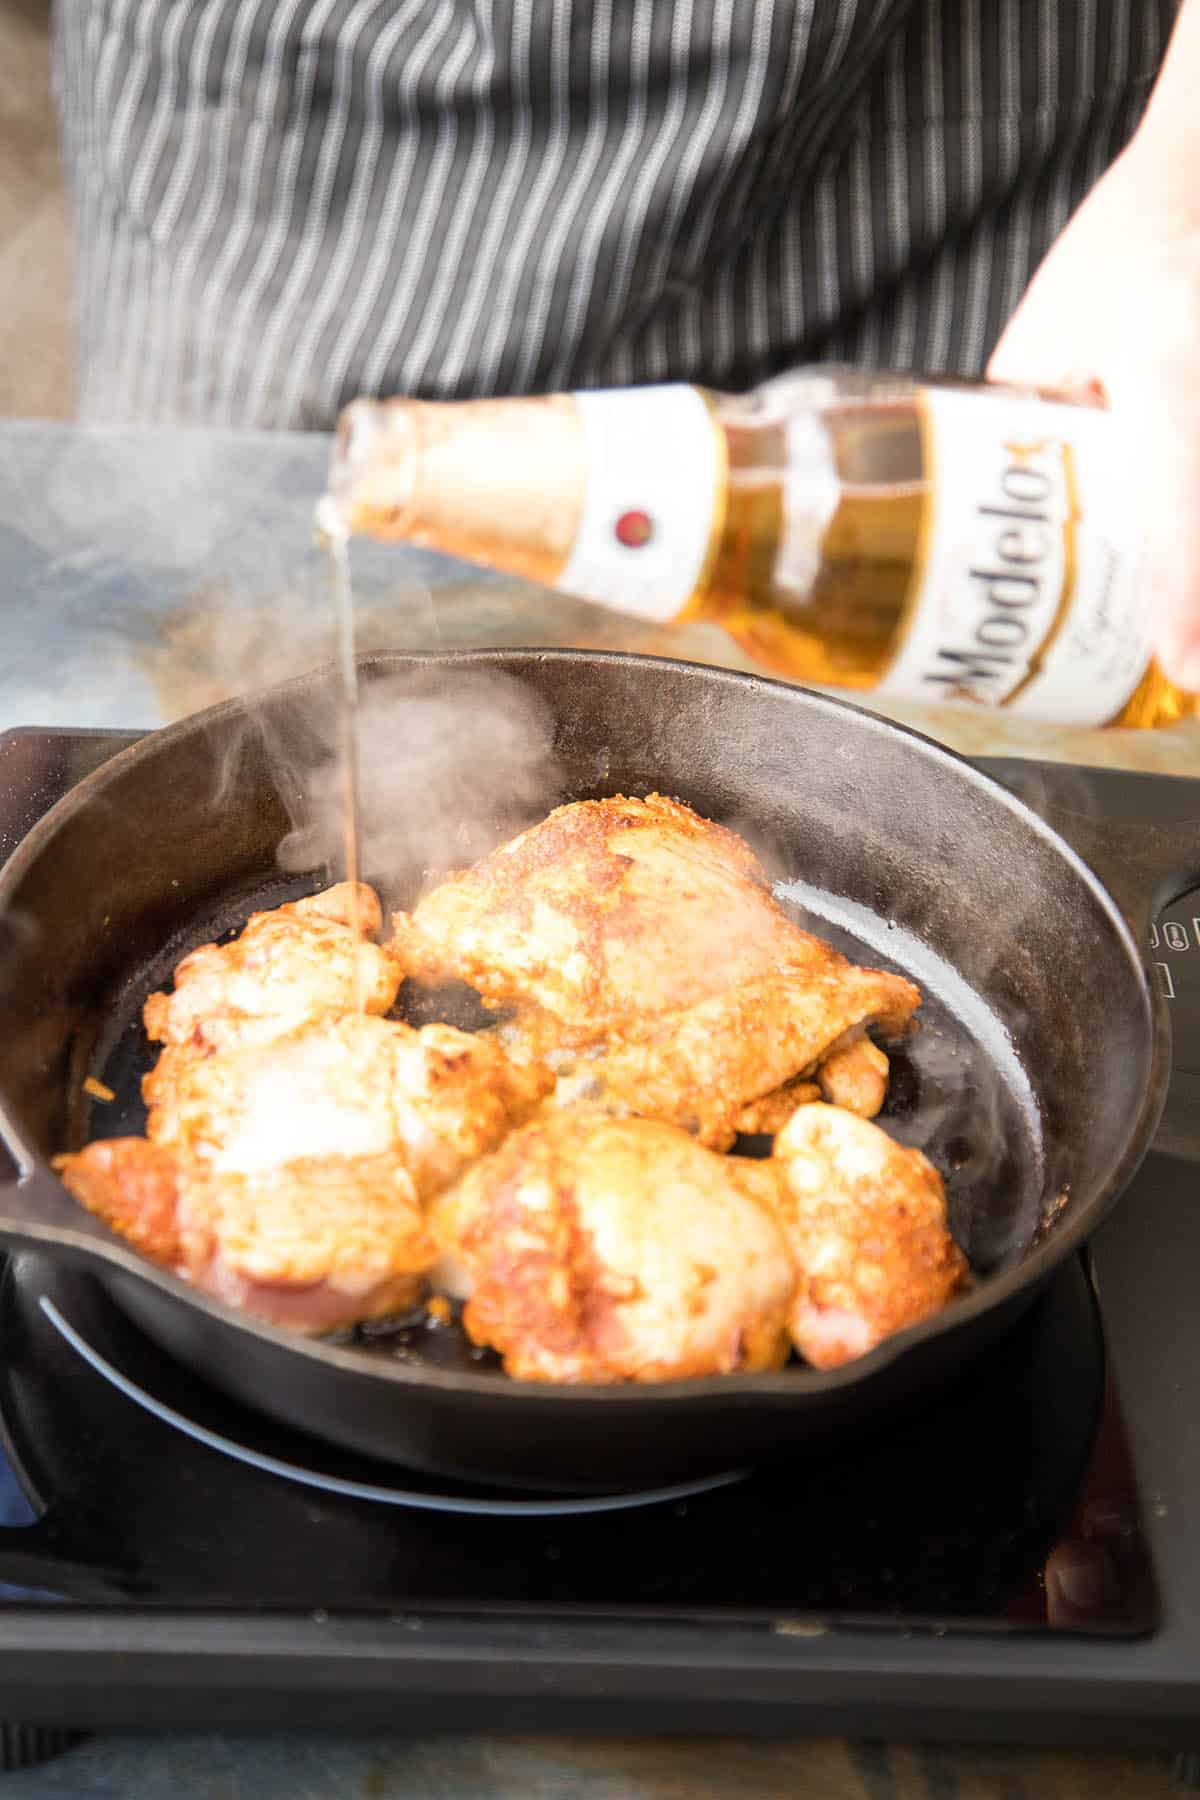 Model Beer makes for juicy pulled chicken